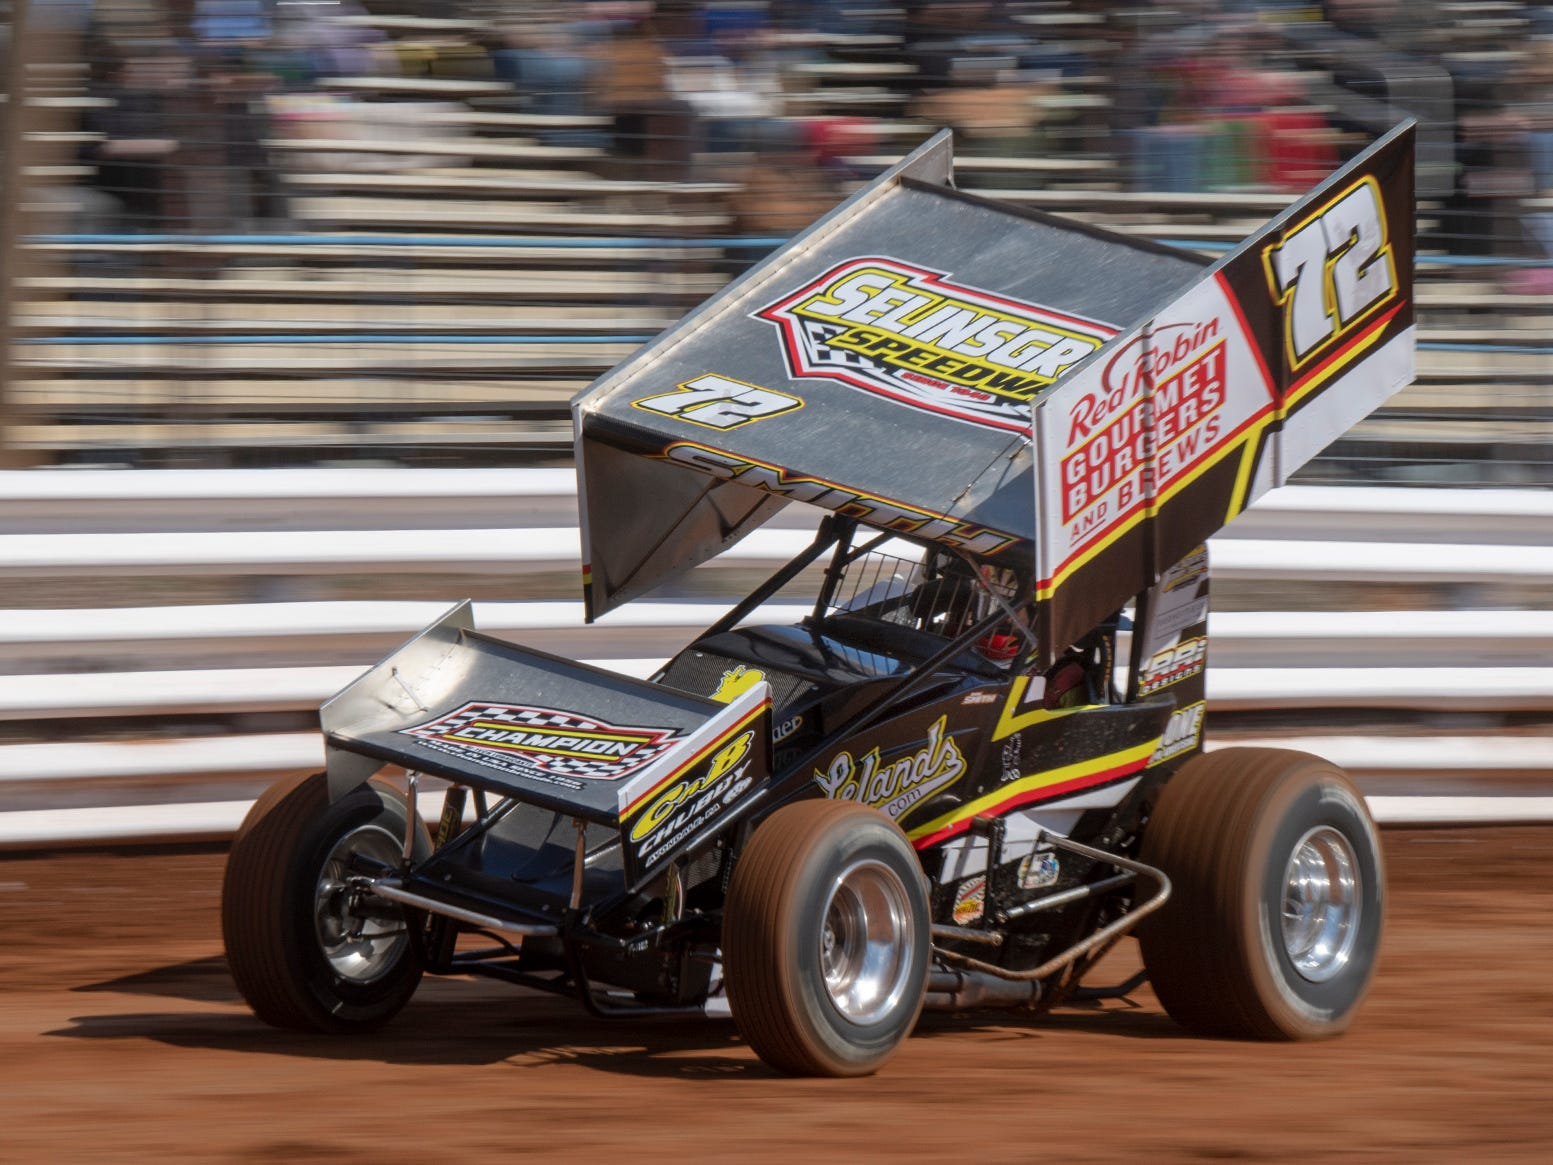 Rayan Smith in the #72 car came in first during the third heat of the Williams Grove season opener for 410 sprints Sunday March 17, 2019.